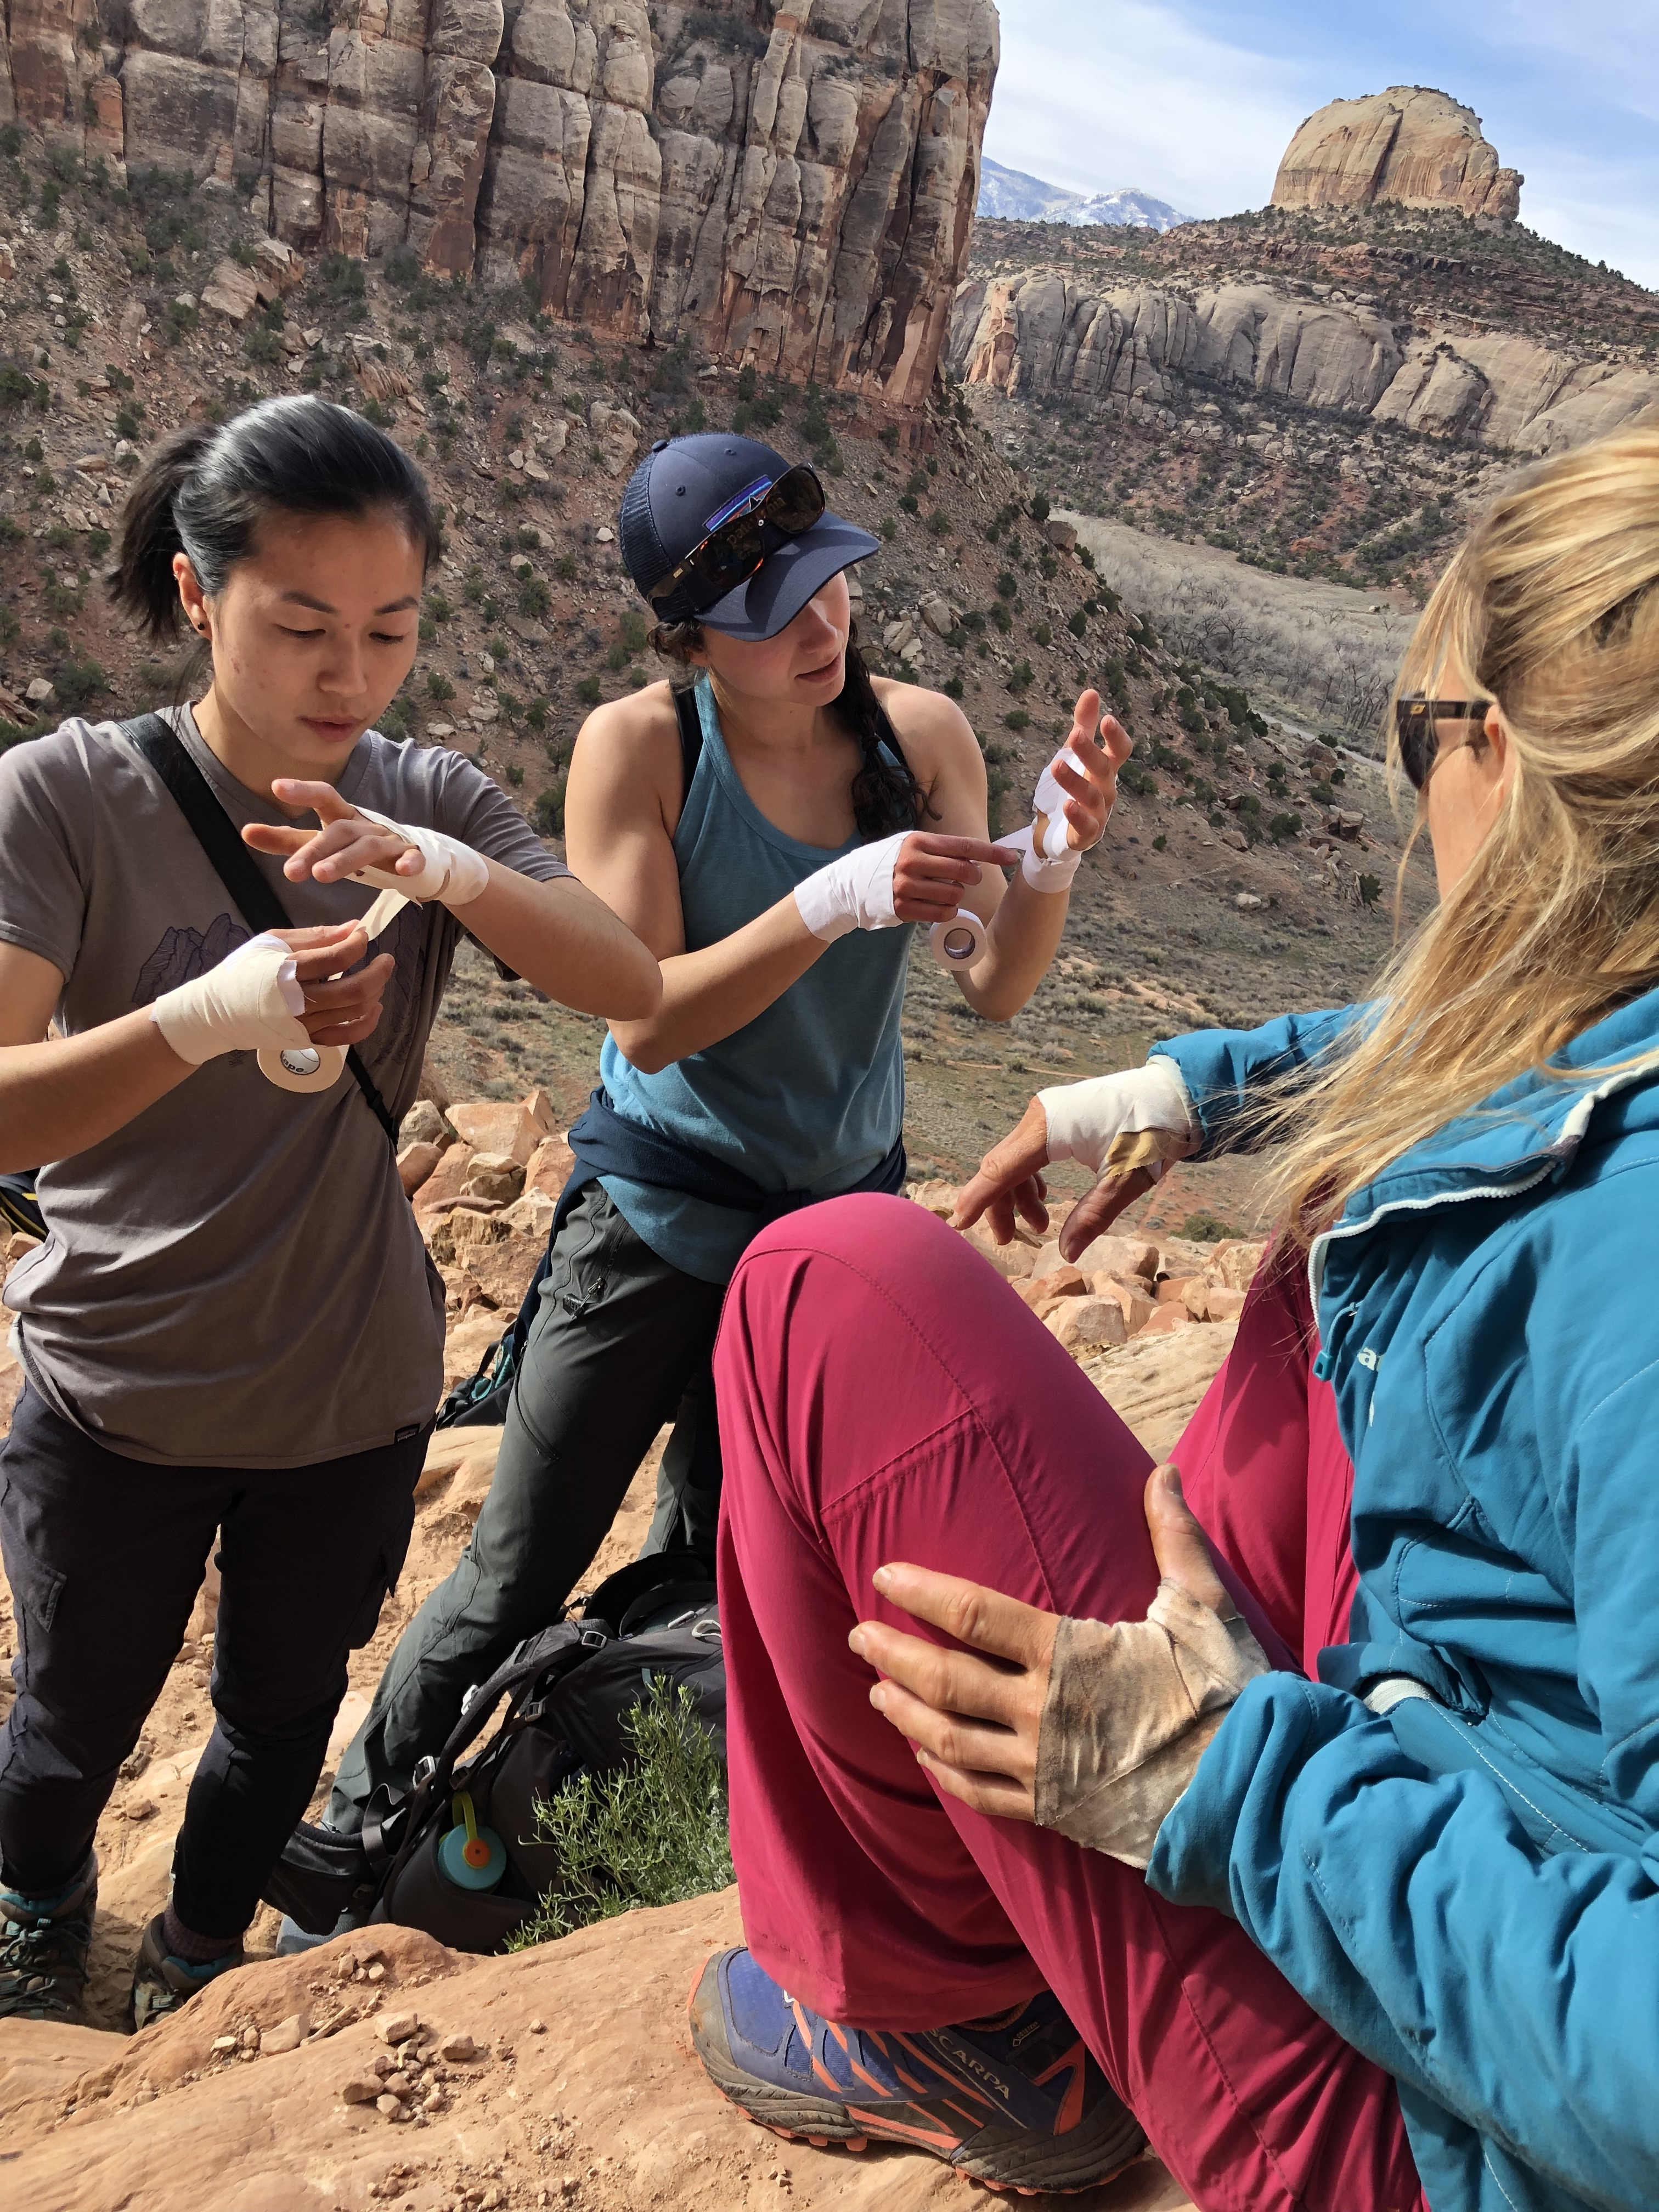 Learn more than the rest step. Kitty teaches Spring 2019 Chicks Indian Creek participants how to tape up before climbing